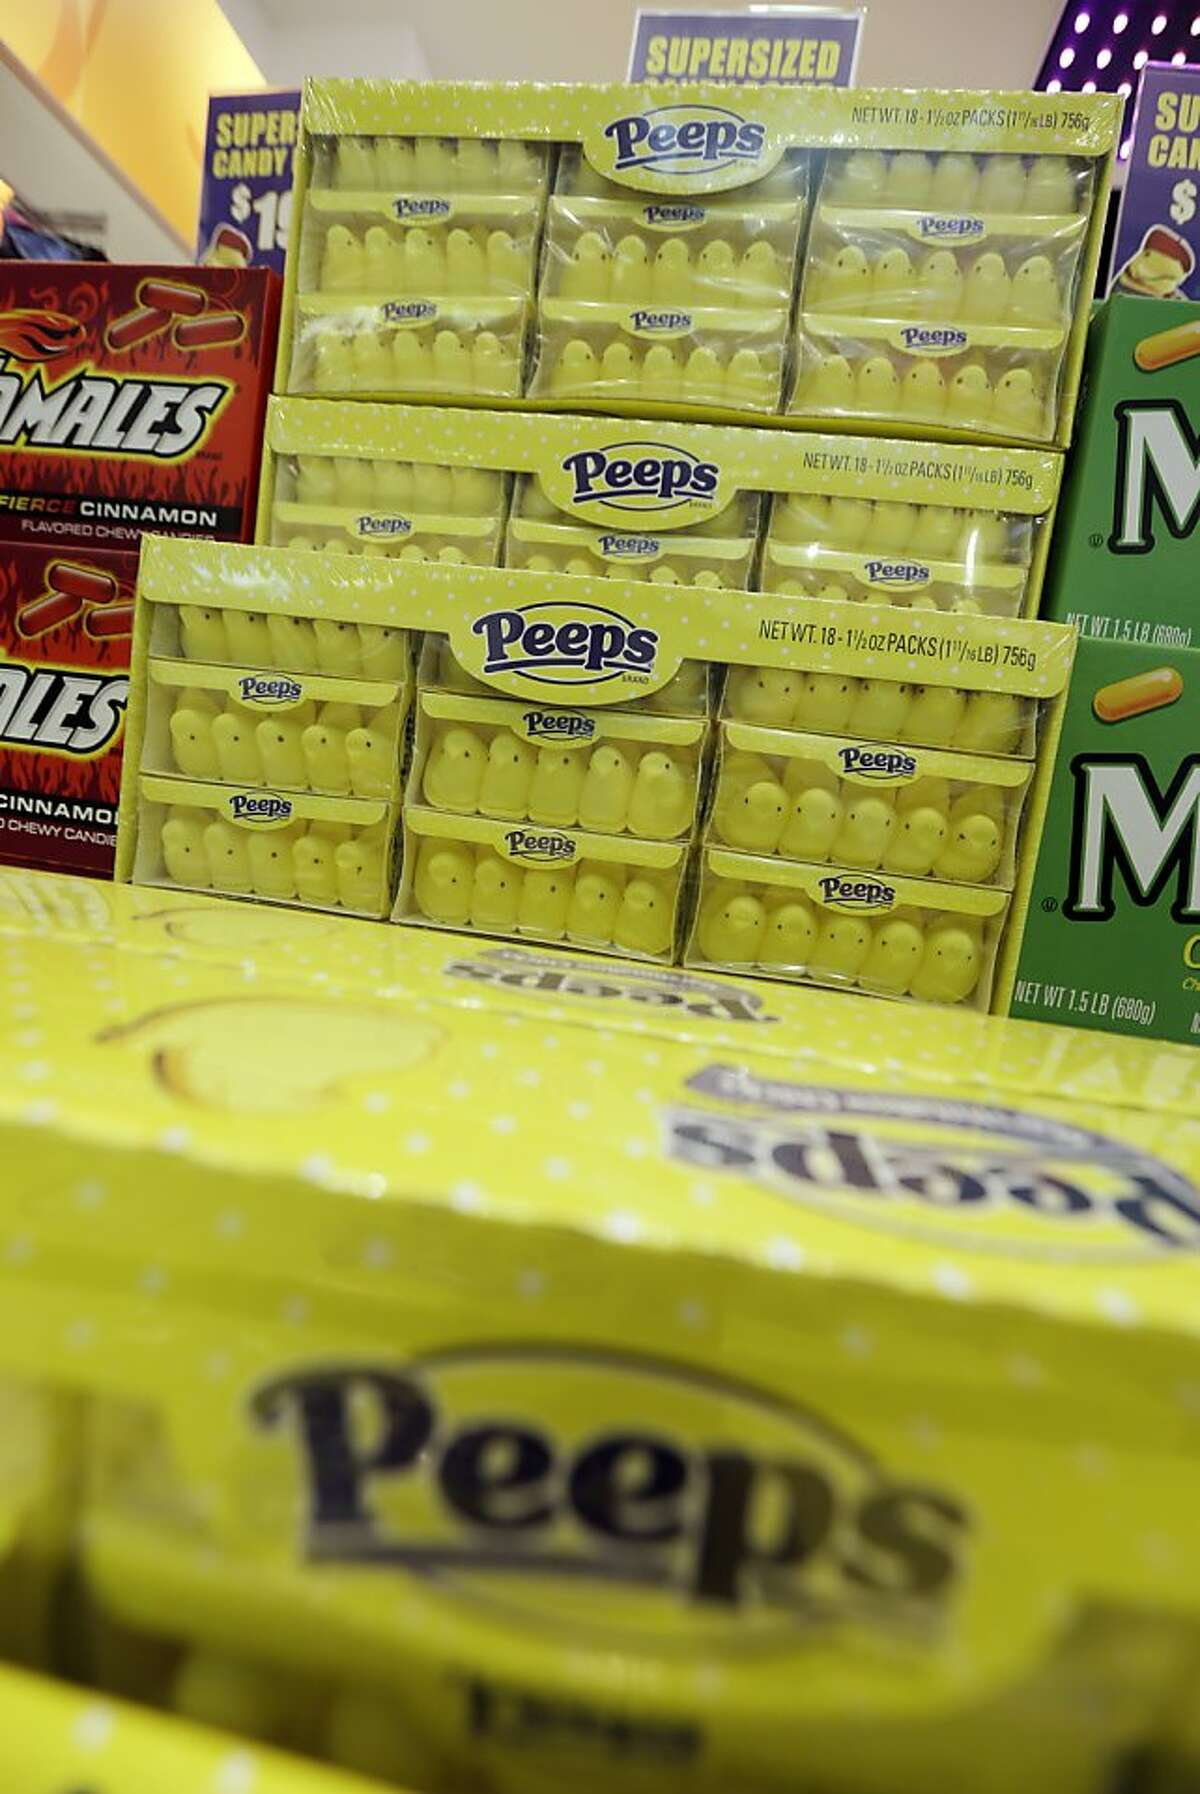 Shown are boxes of Peeps at the Peeps & Company store on Wednesday, Feb. 13, 2013, in Bethlehem, Pa. (AP Photo/Matt Rourke)